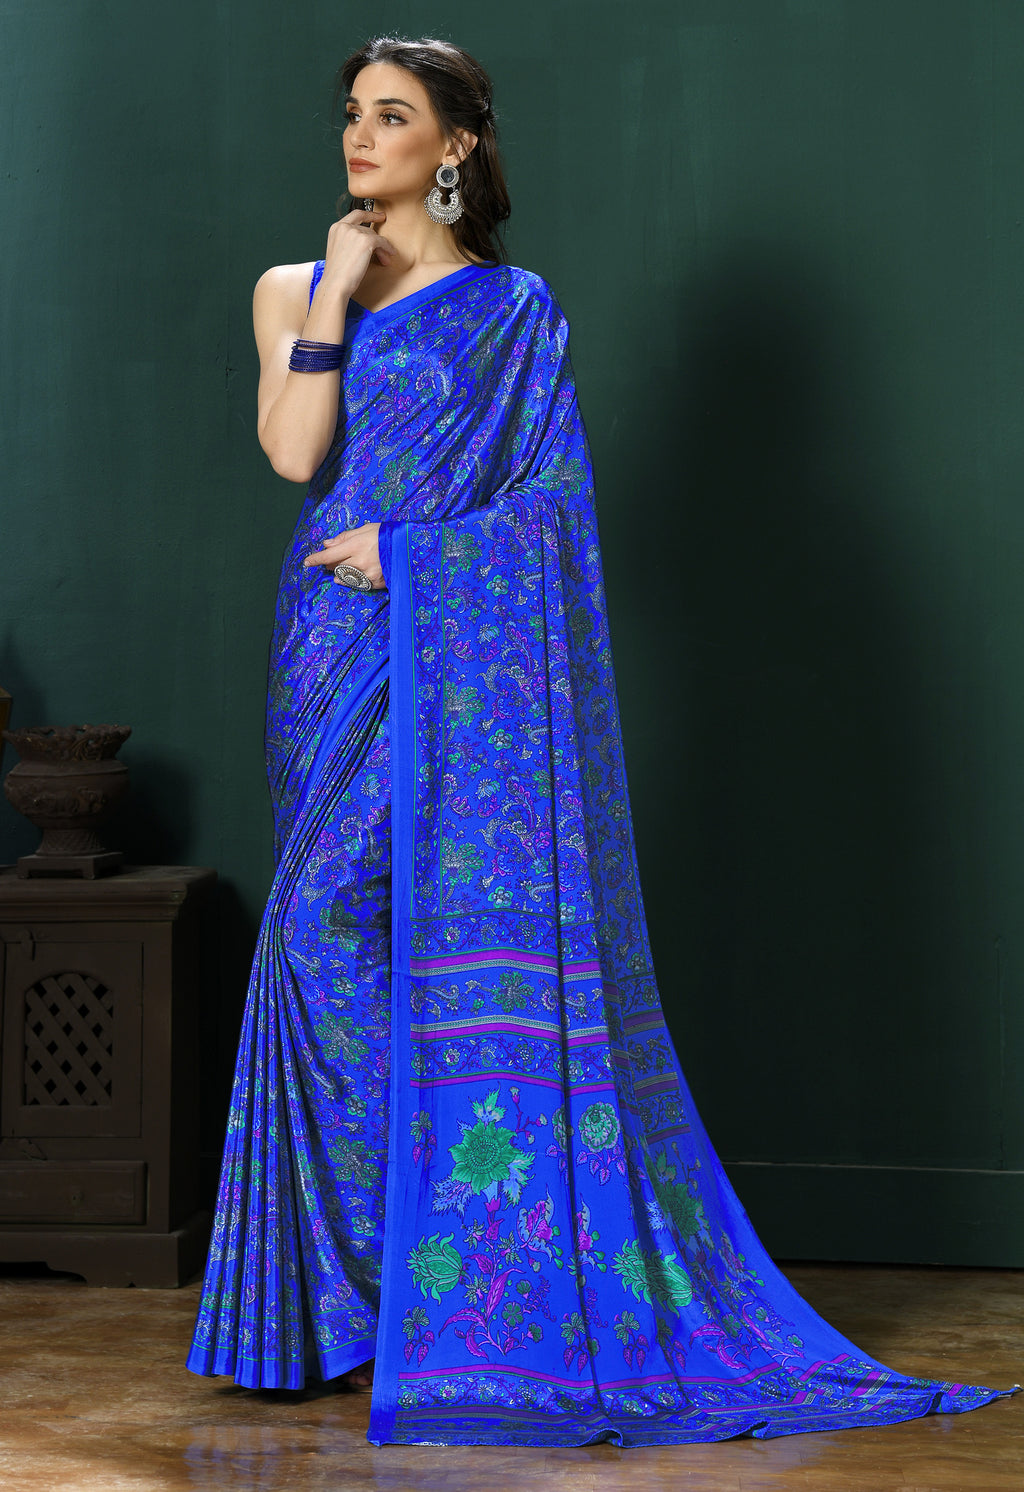 Ink Blue Color Crepe  Digital Print Kitty Party Sarees NYF-8136